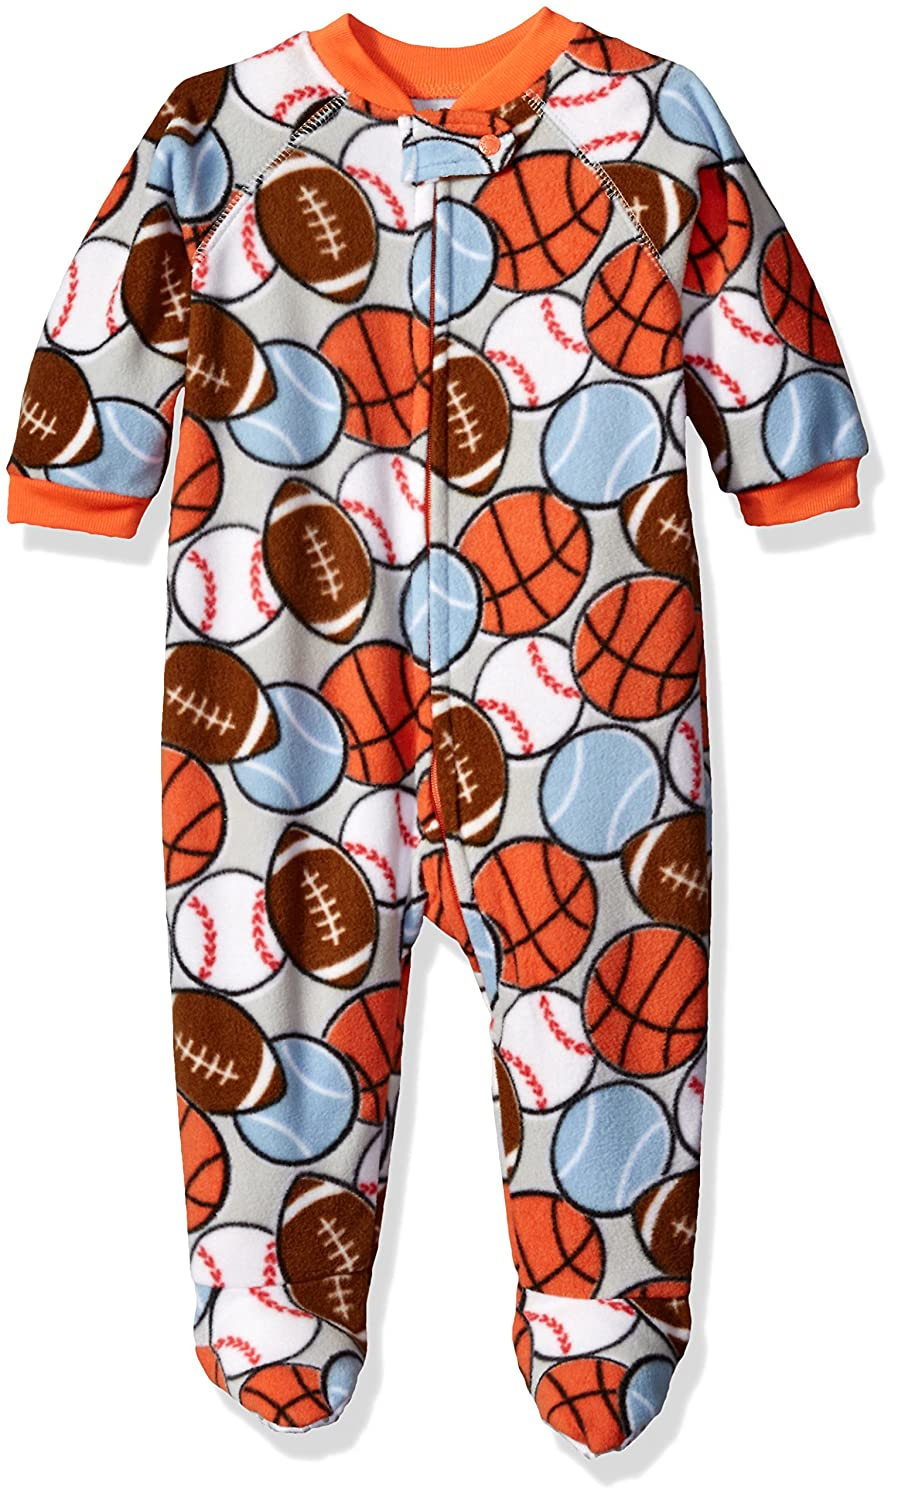 The Children's Place Toddler Boys' Stretchie Pajamas 2077988